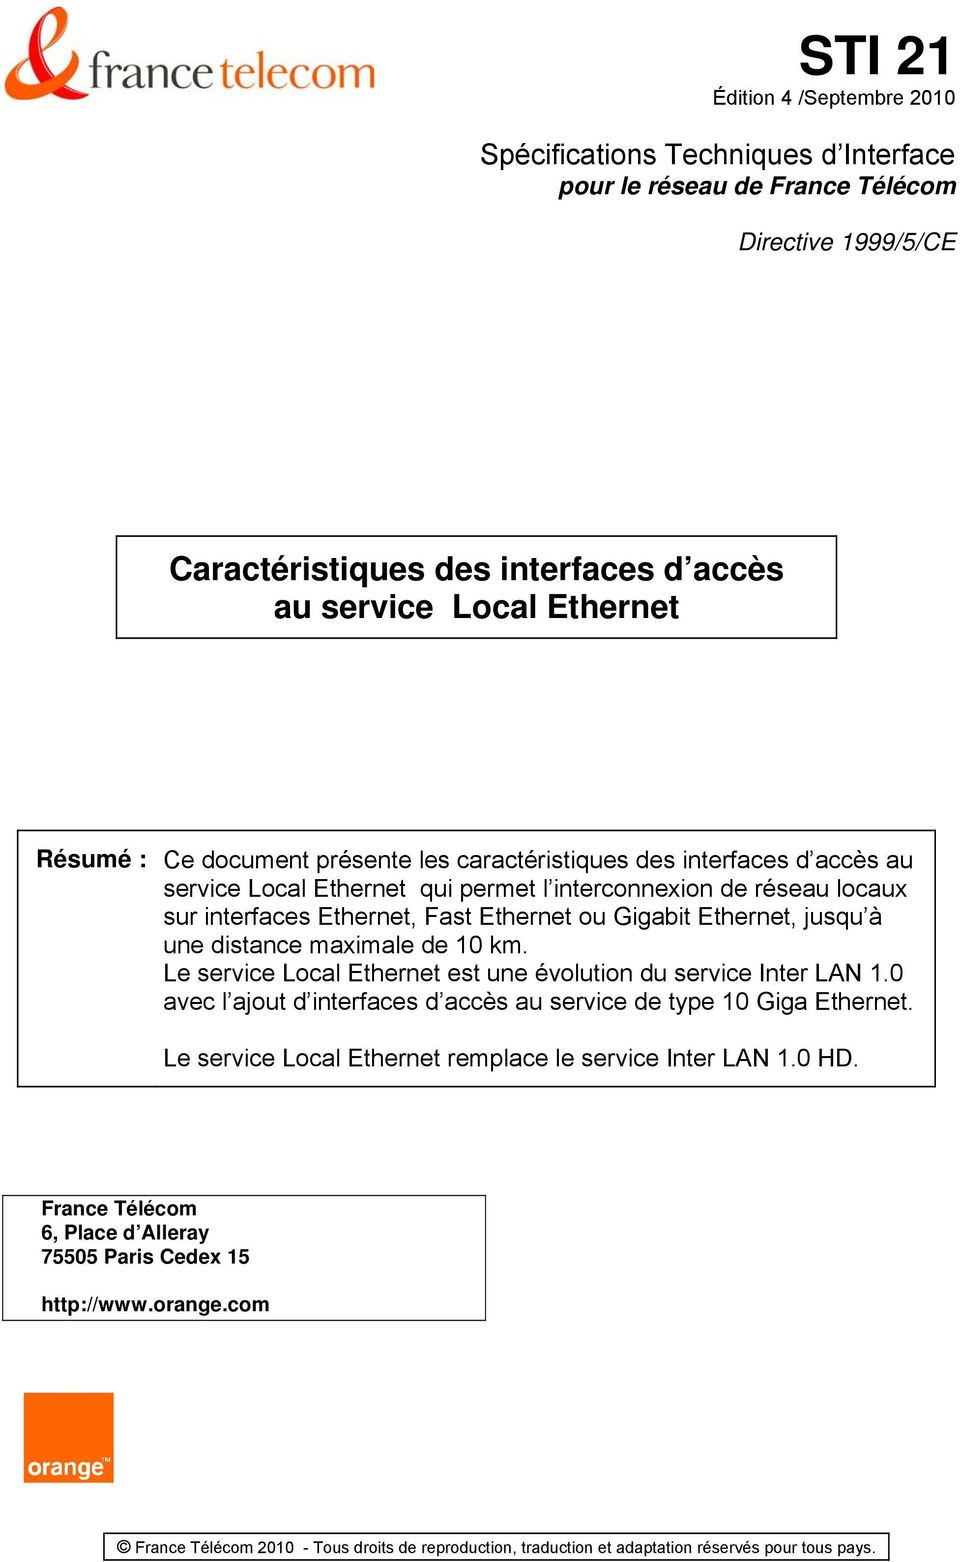 Ethernet, Fast Ethernet ou Gigabit Ethernet, jusqu à une distance maximale de 10 km. Le service Local Ethernet est une évolution du service Inter LAN 1.